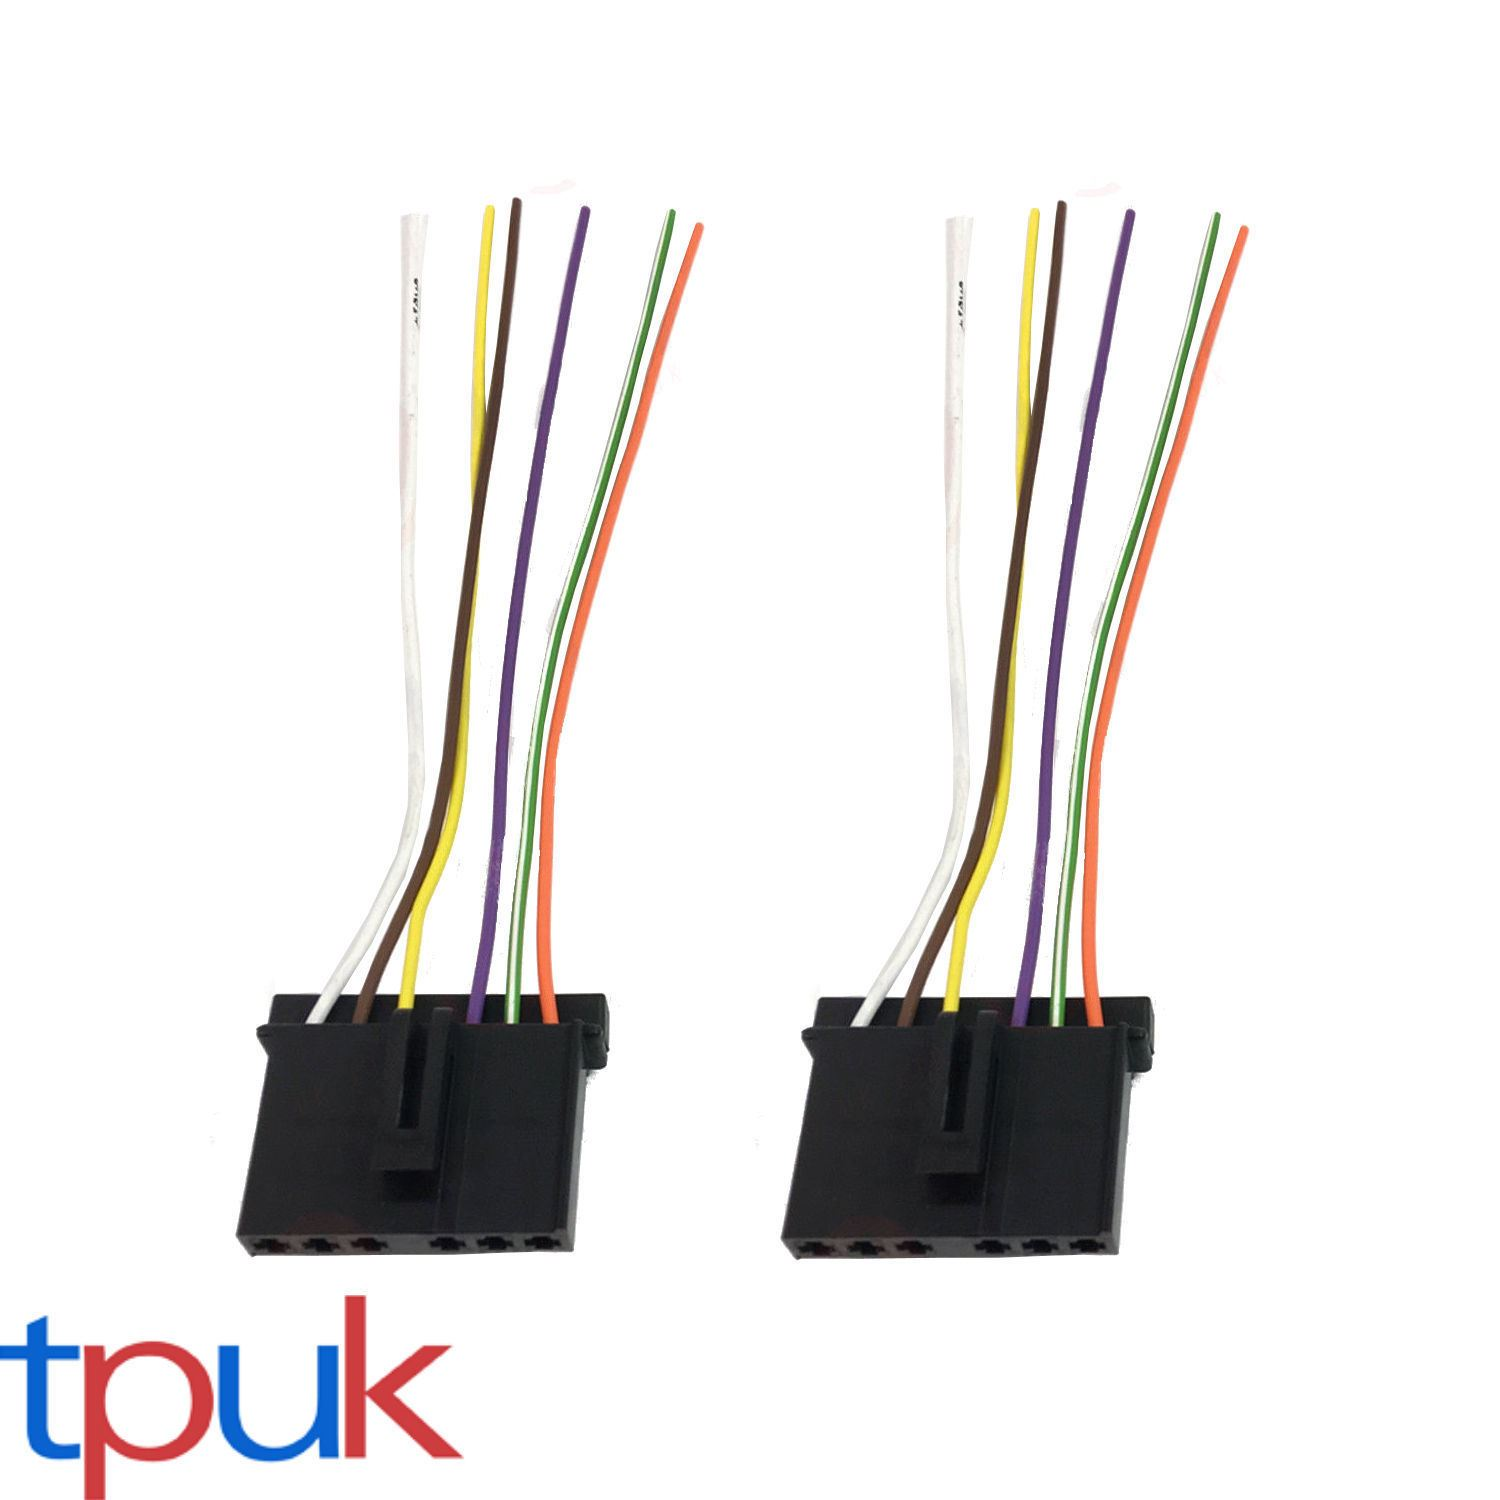 2 X Ford Transit Mk6 Mk7 Rear Light Bulb Holder Wire Loom Cable Wiring Block Connectors Connector Plug